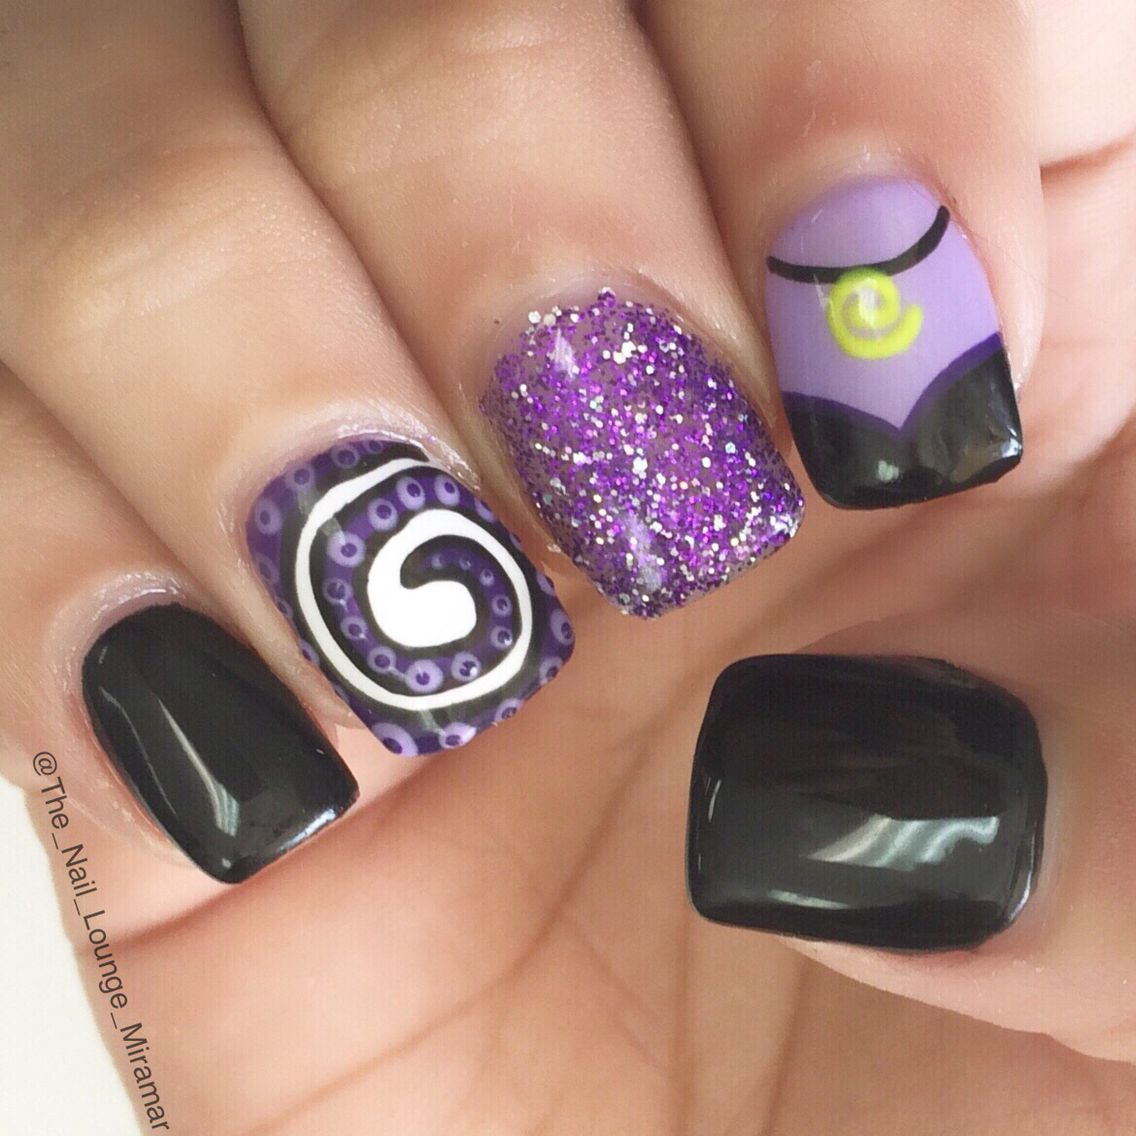 Disney\'s Ursula nail art design - Halloween | Pinterest - Nagellak ...